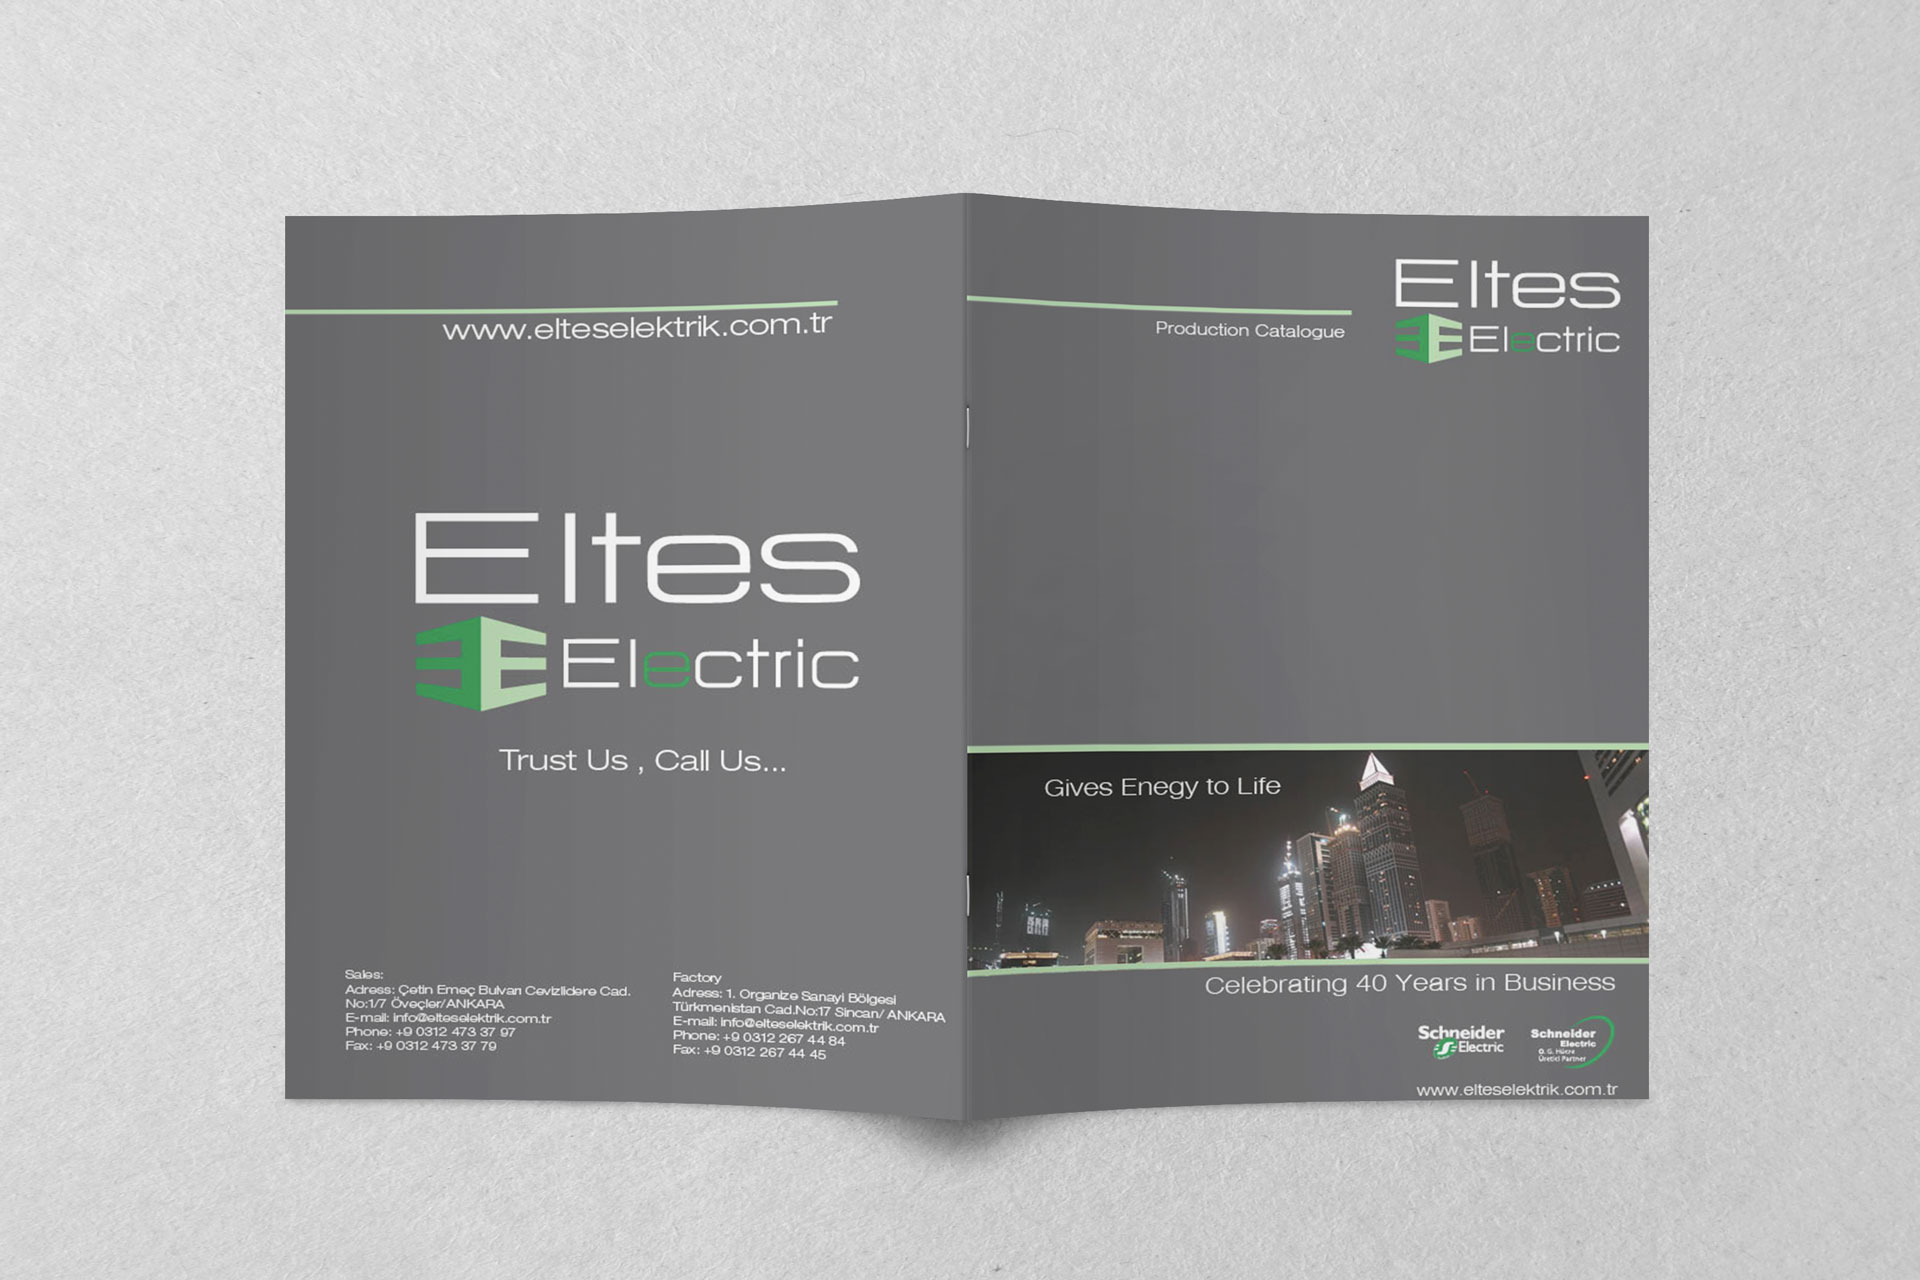 eltes-catalogue-3